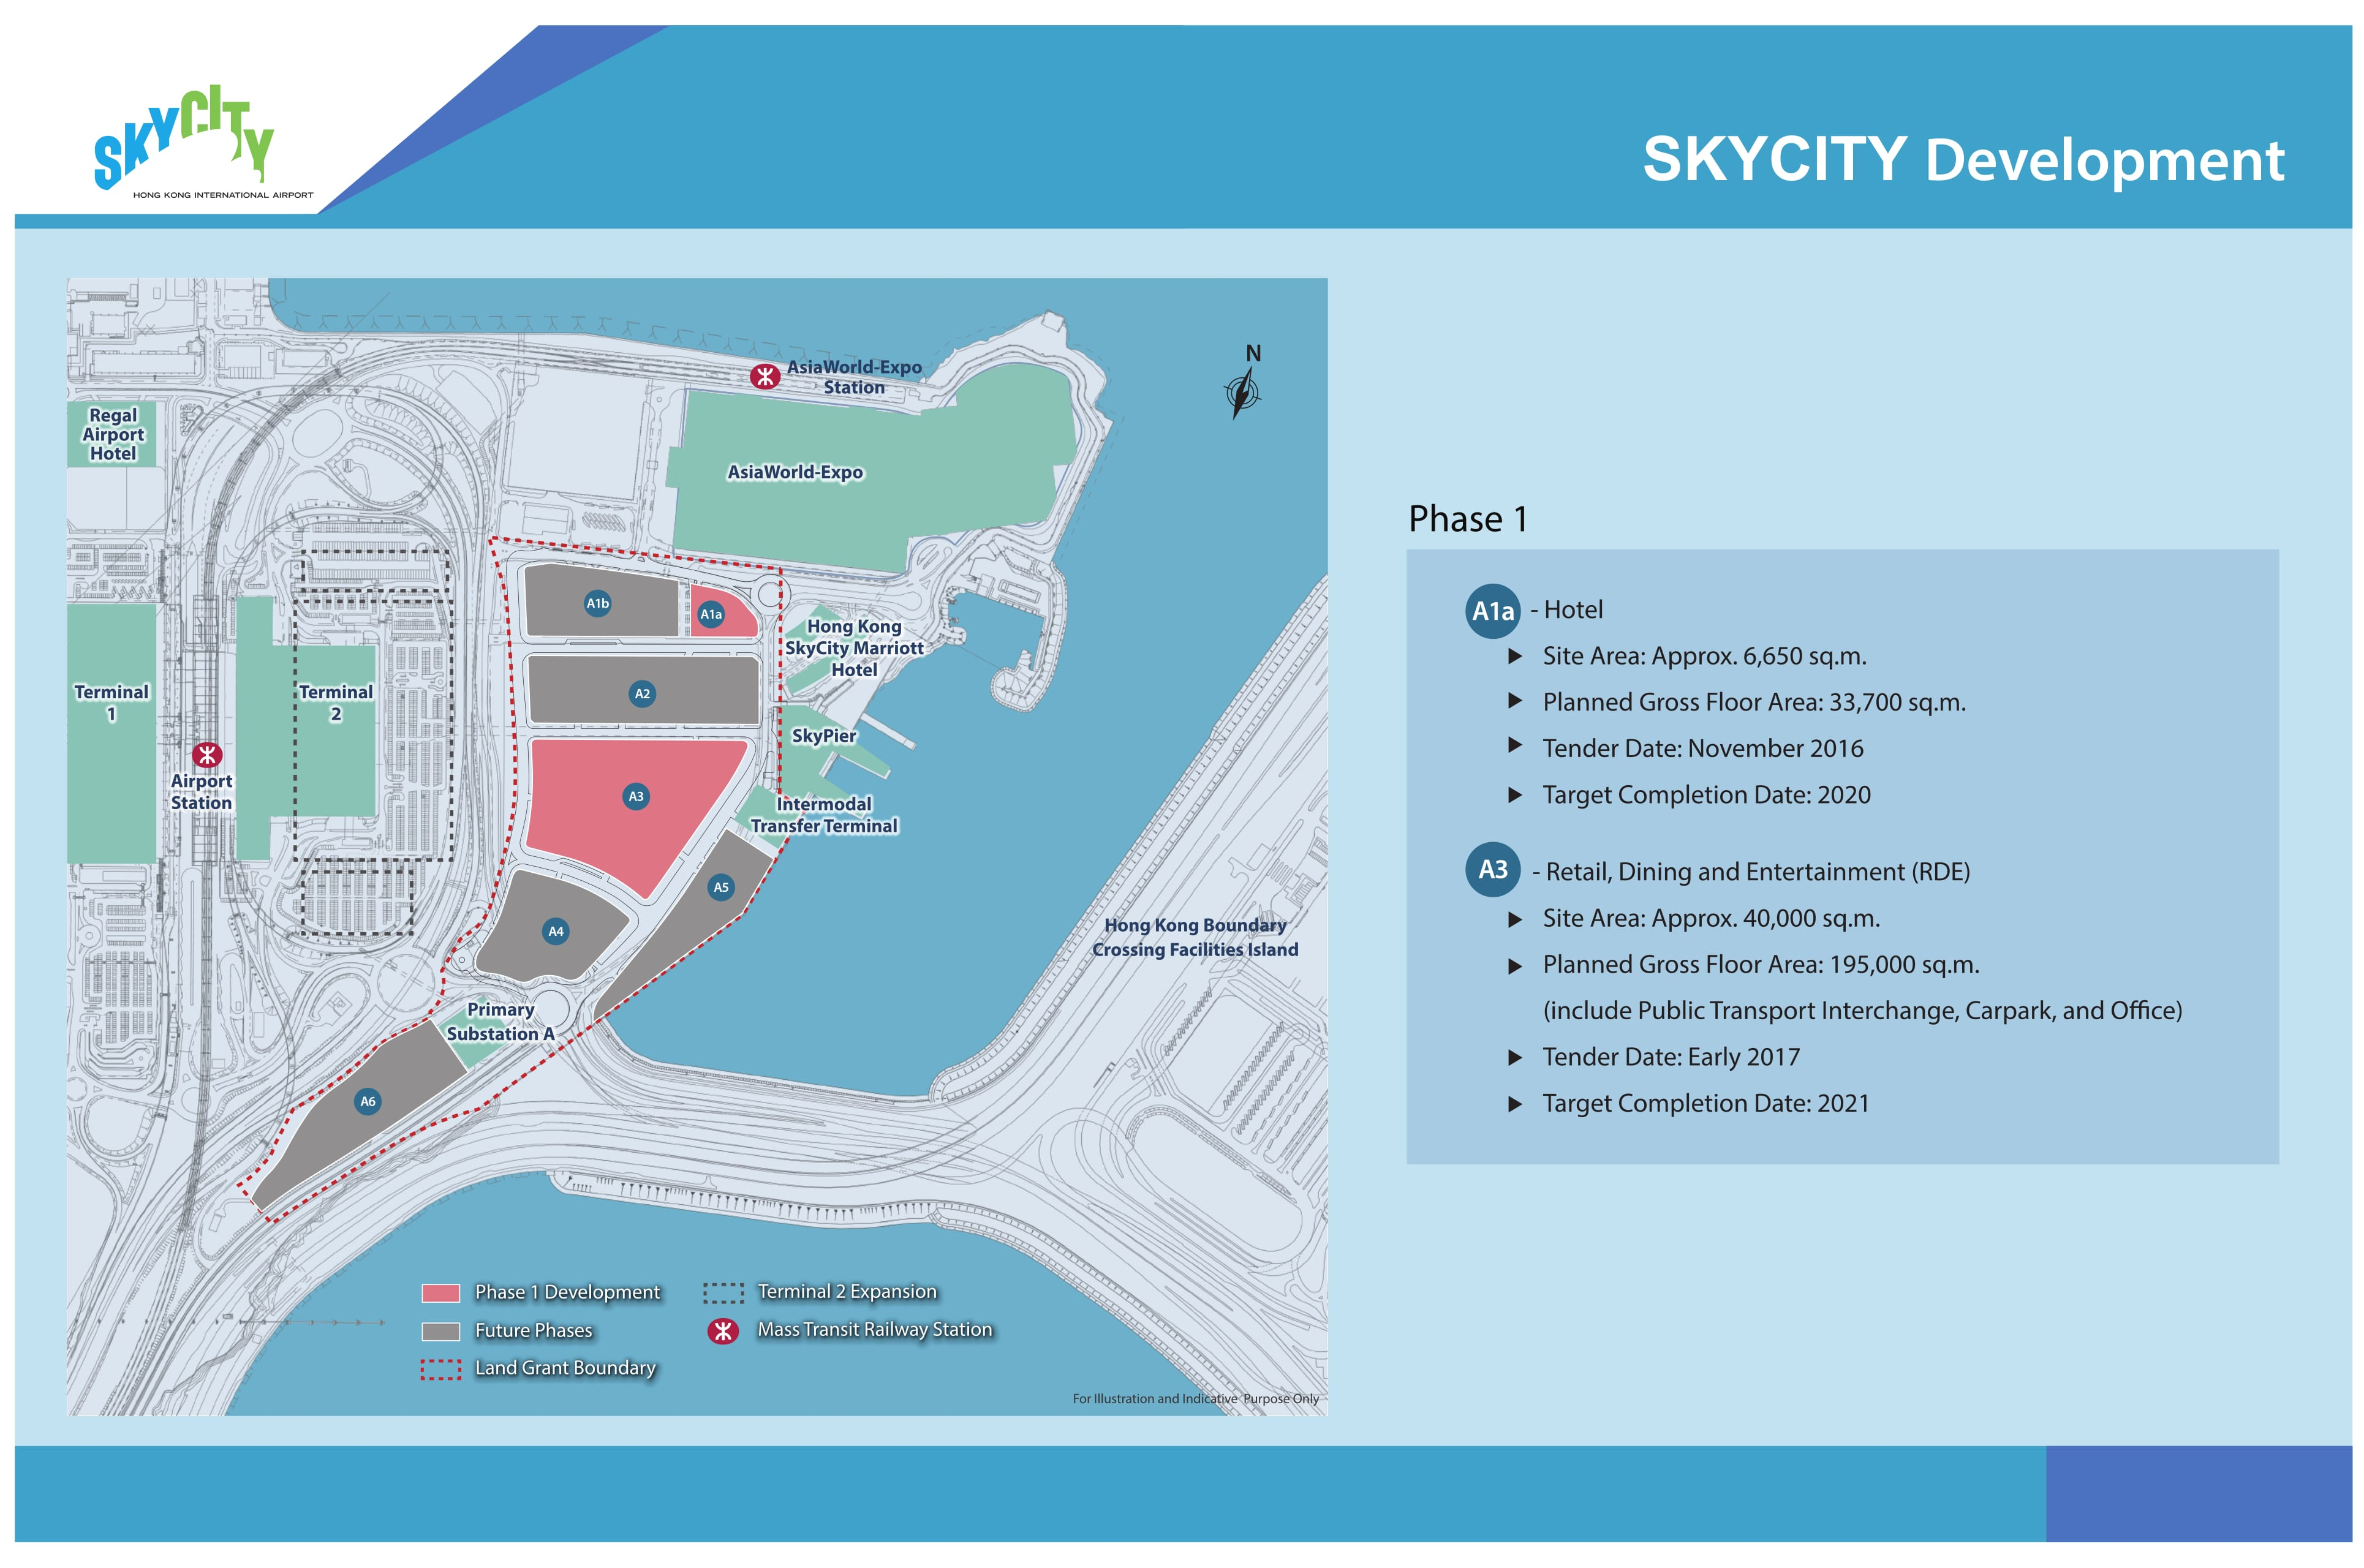 skycity-development-leaflet-english-1